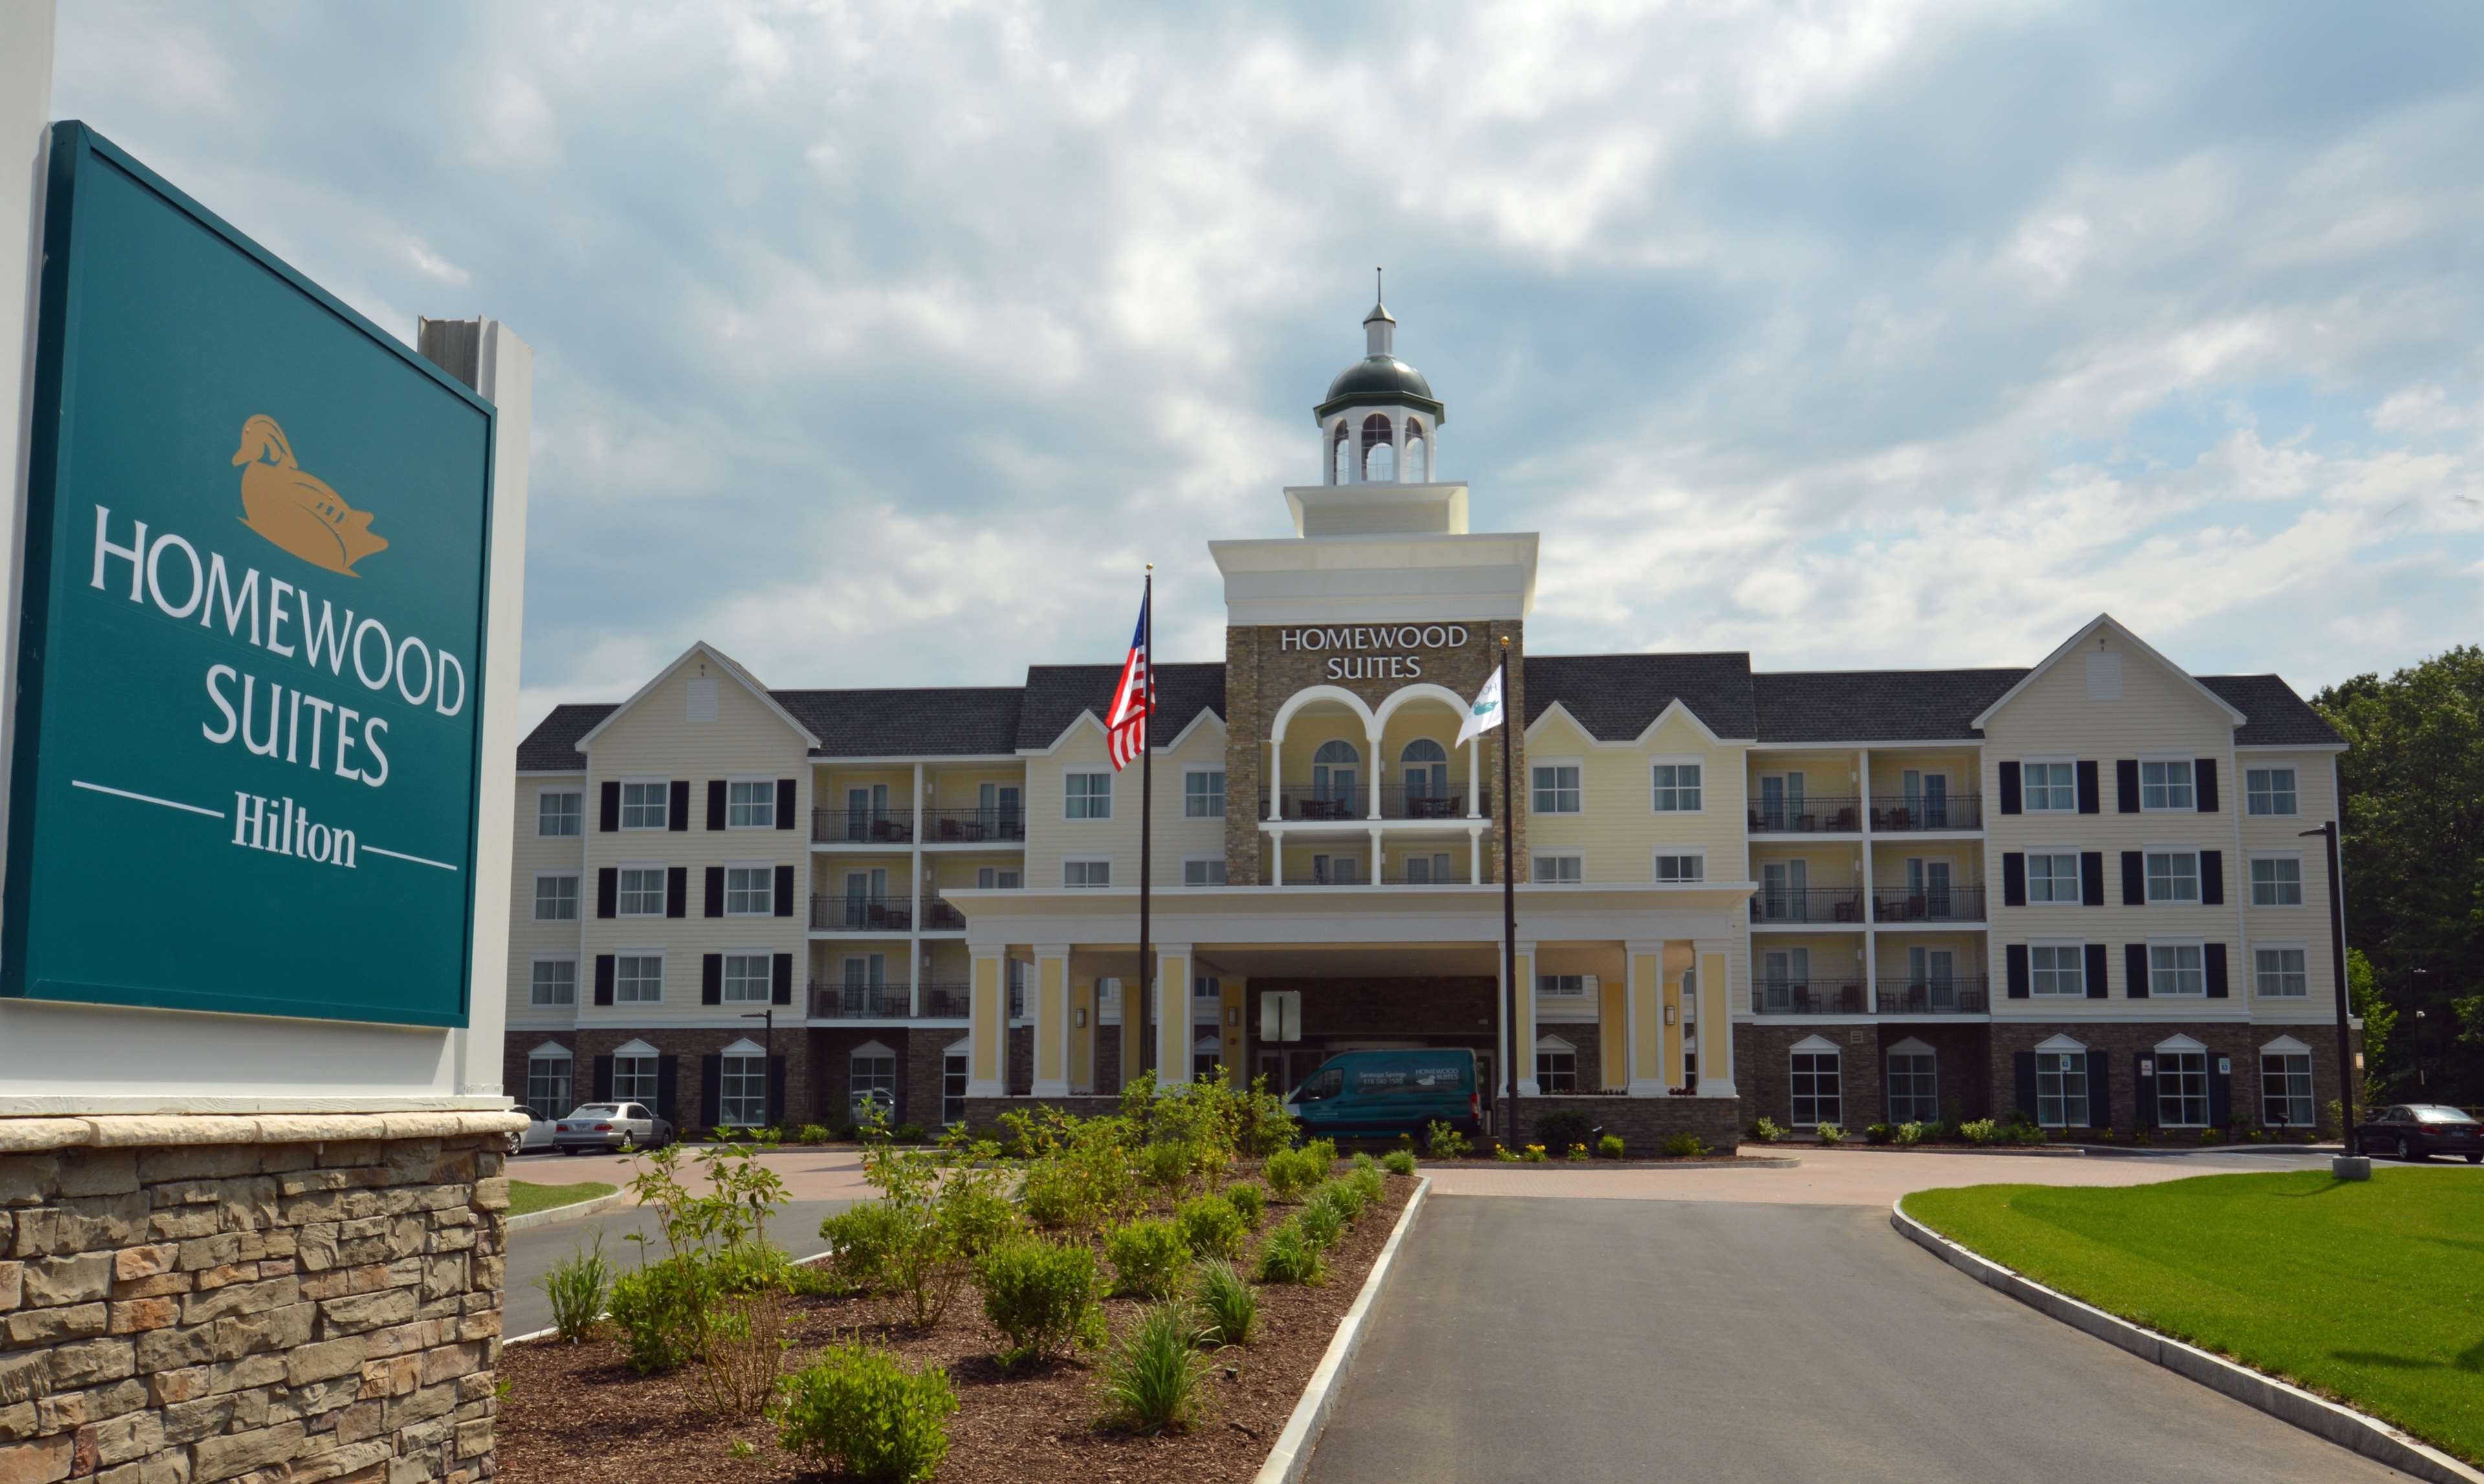 Homewood Suites By Hilton Saratoga Springs In Saratoga